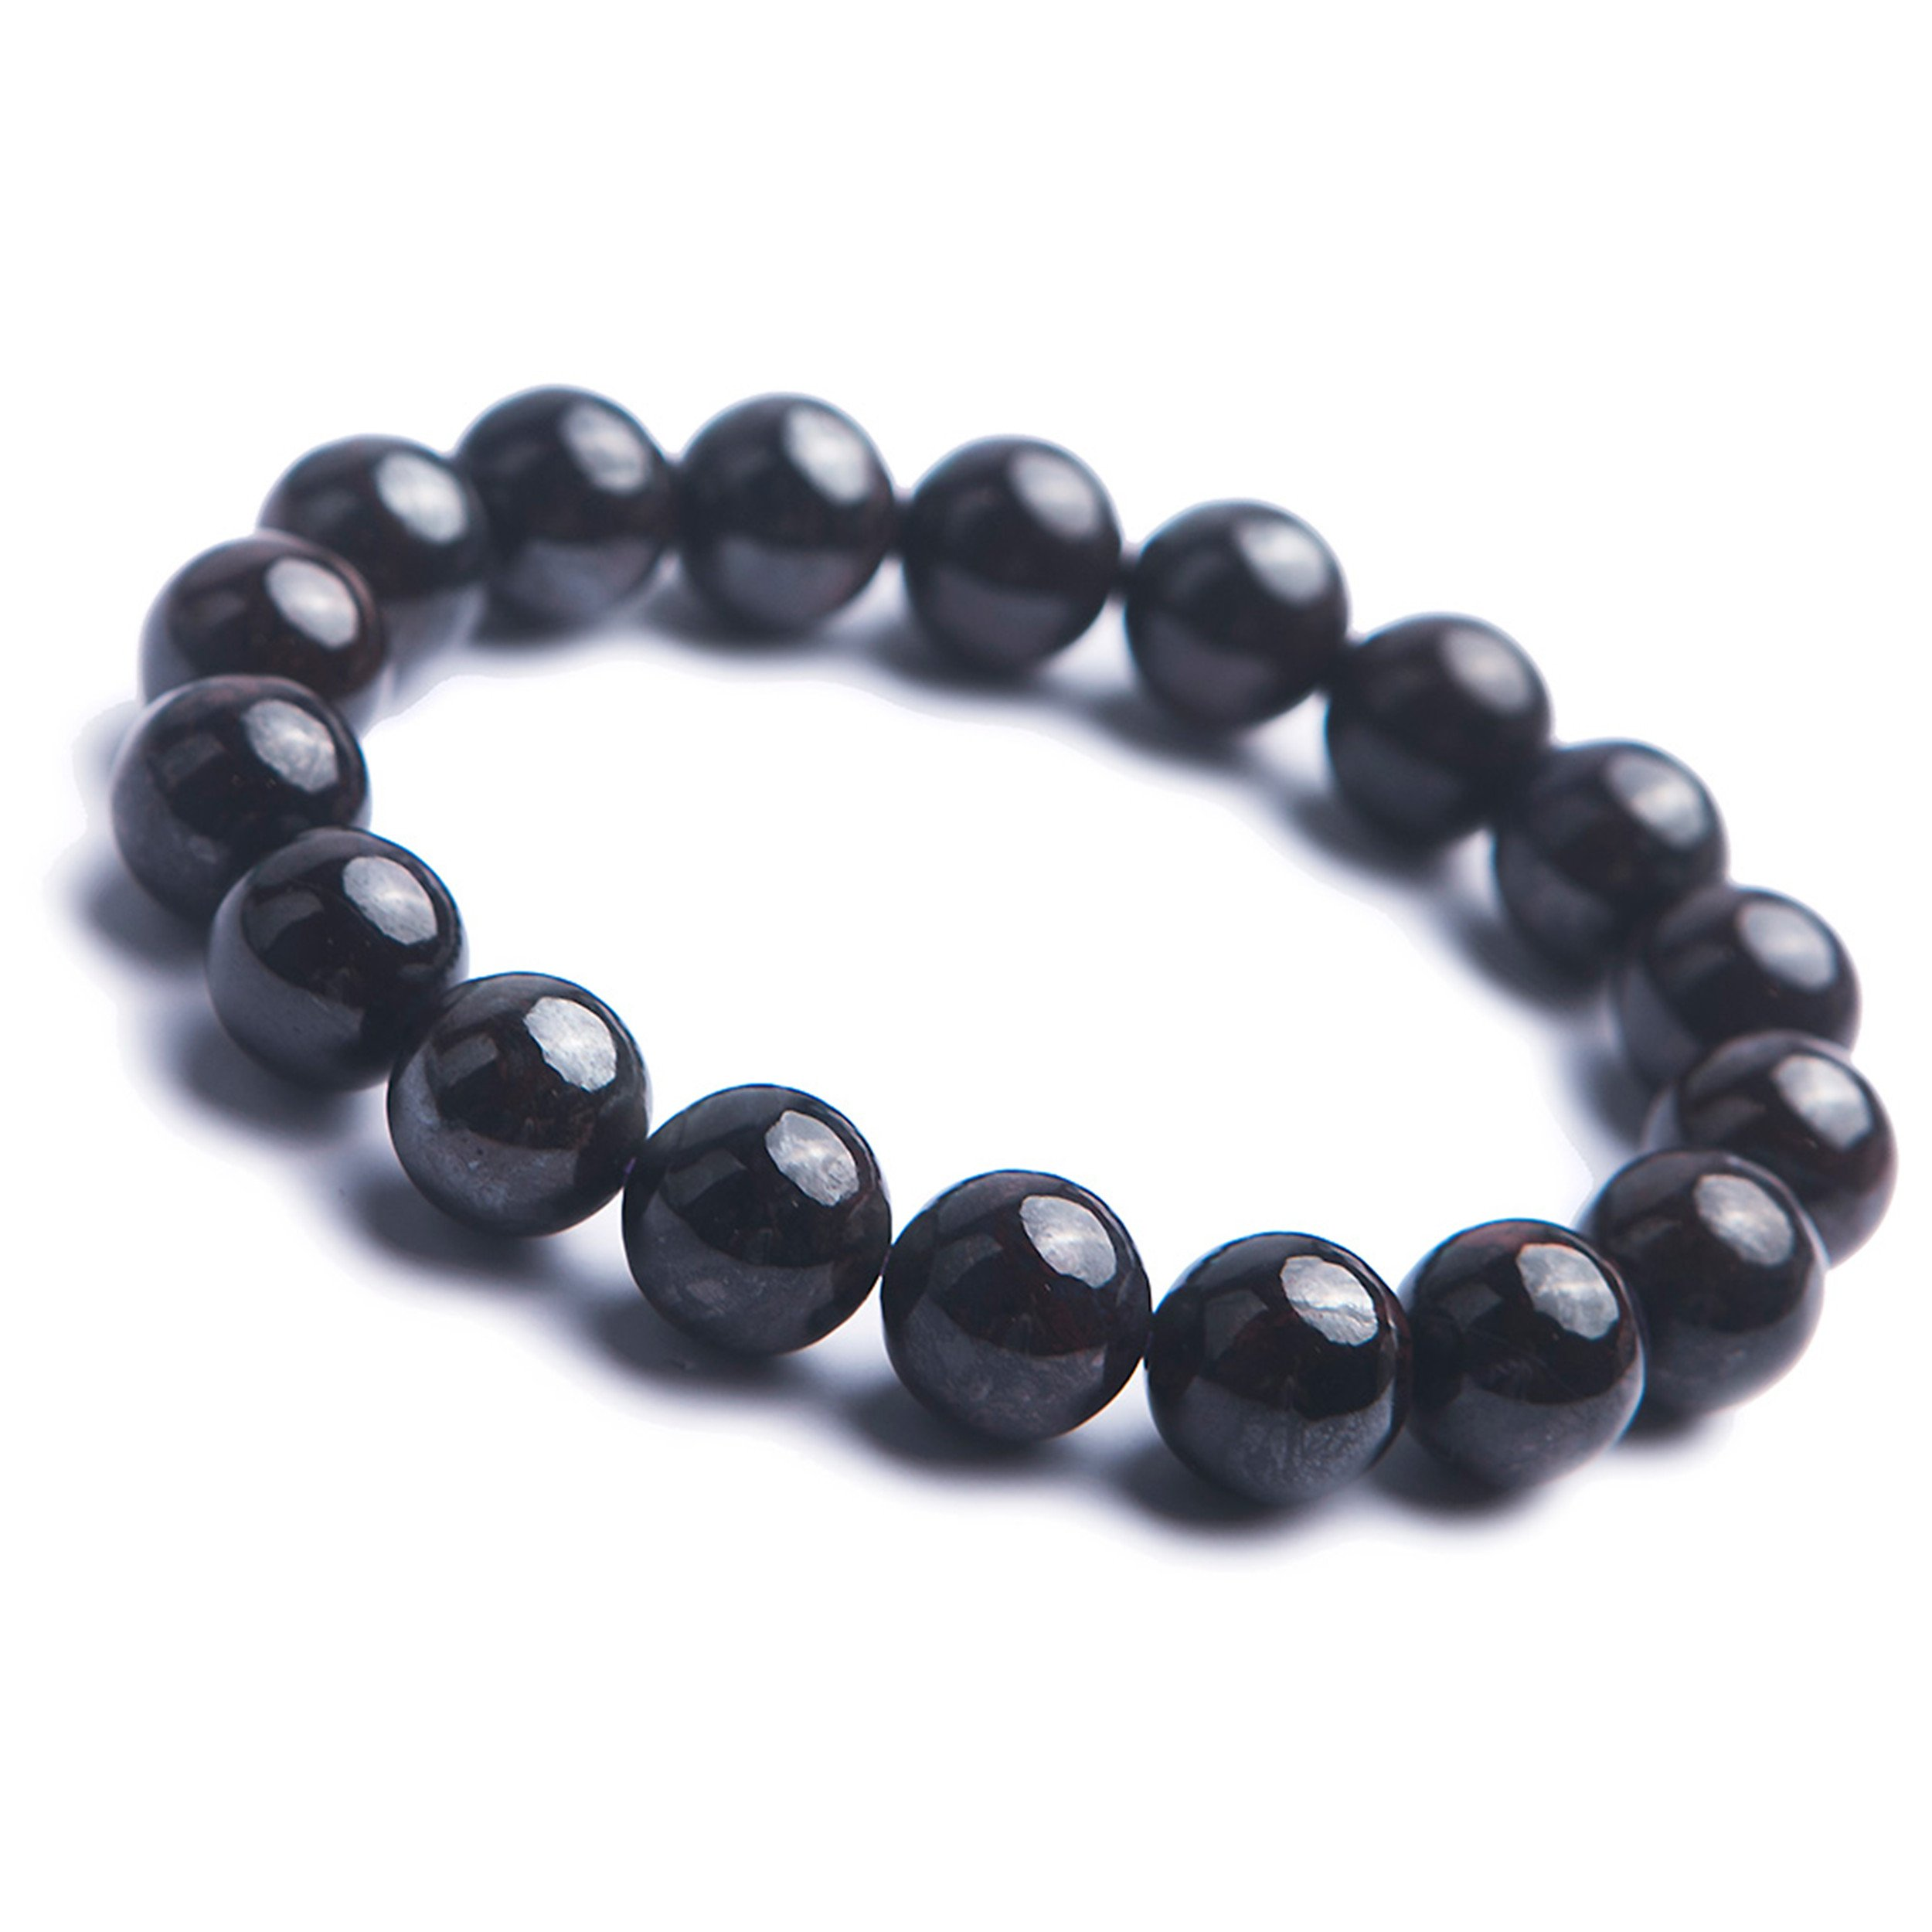 LiZiFang Genuine Natural Sugilite Gemstone Crystal Round Bead Stretch Bracelet For Women 12mm